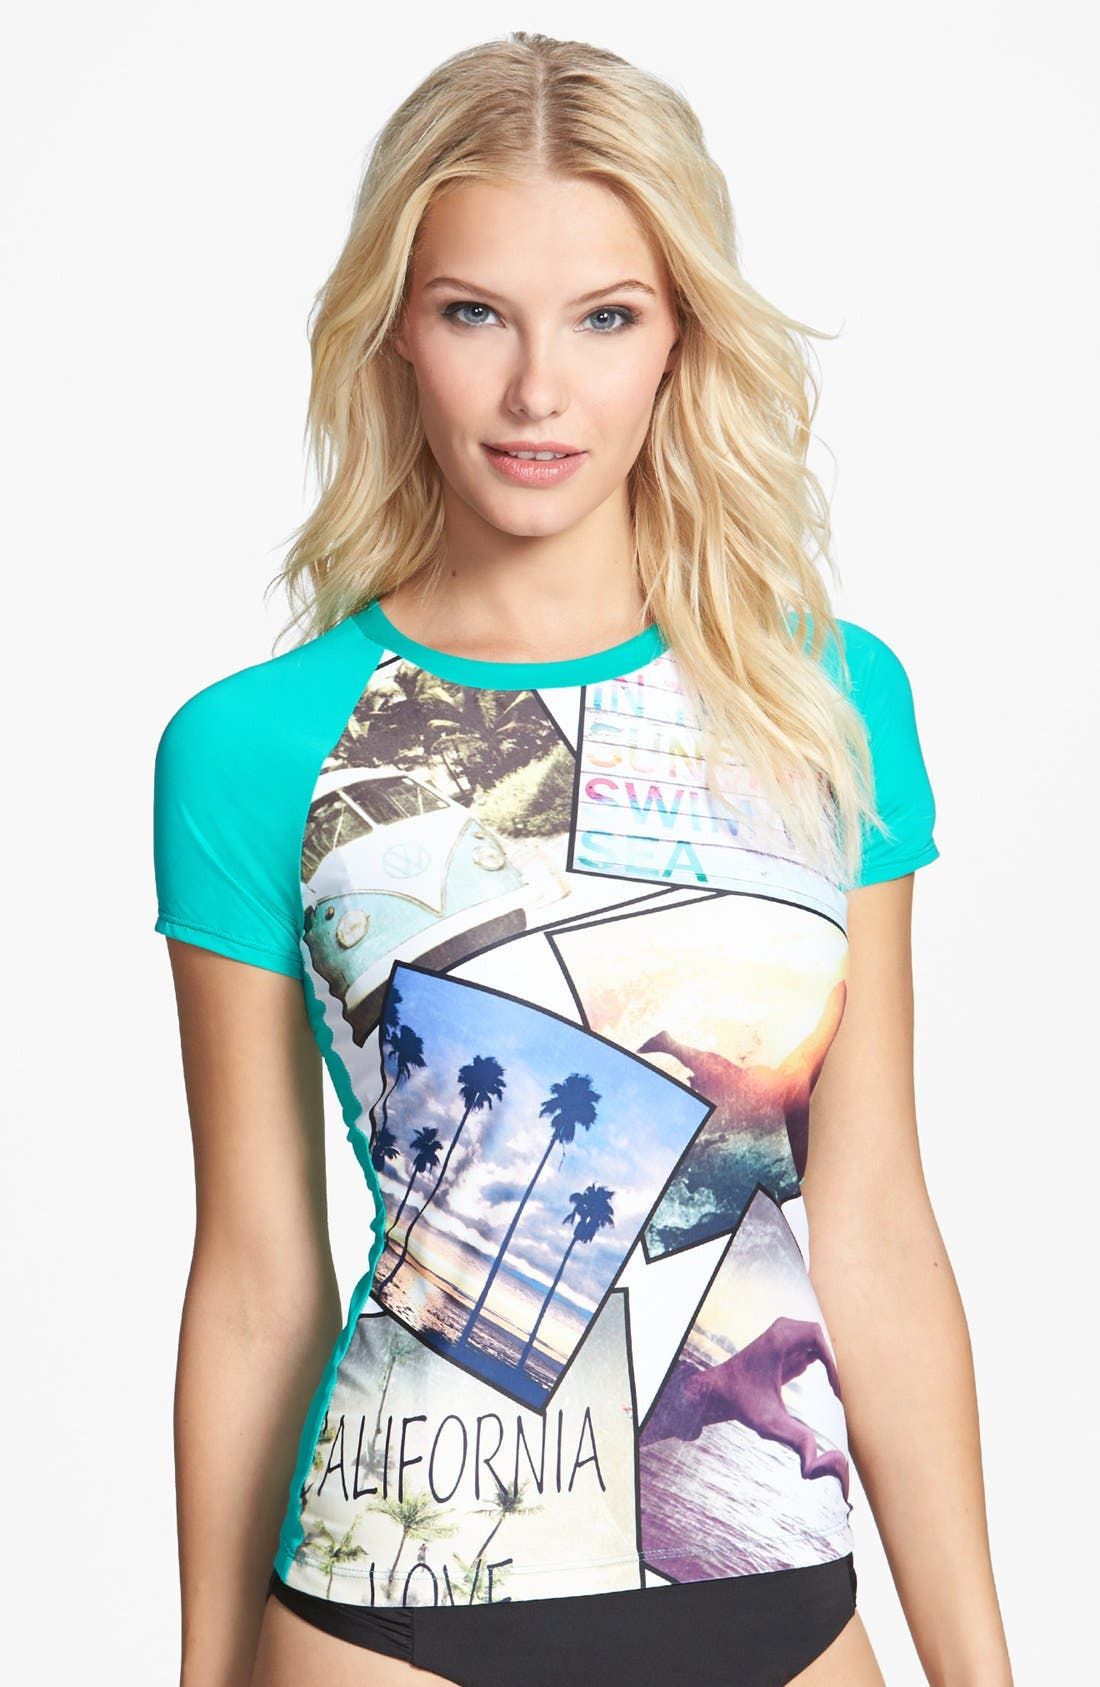 Alternate Image 1 Selected - W Swimwear 'California Love' Rashguard